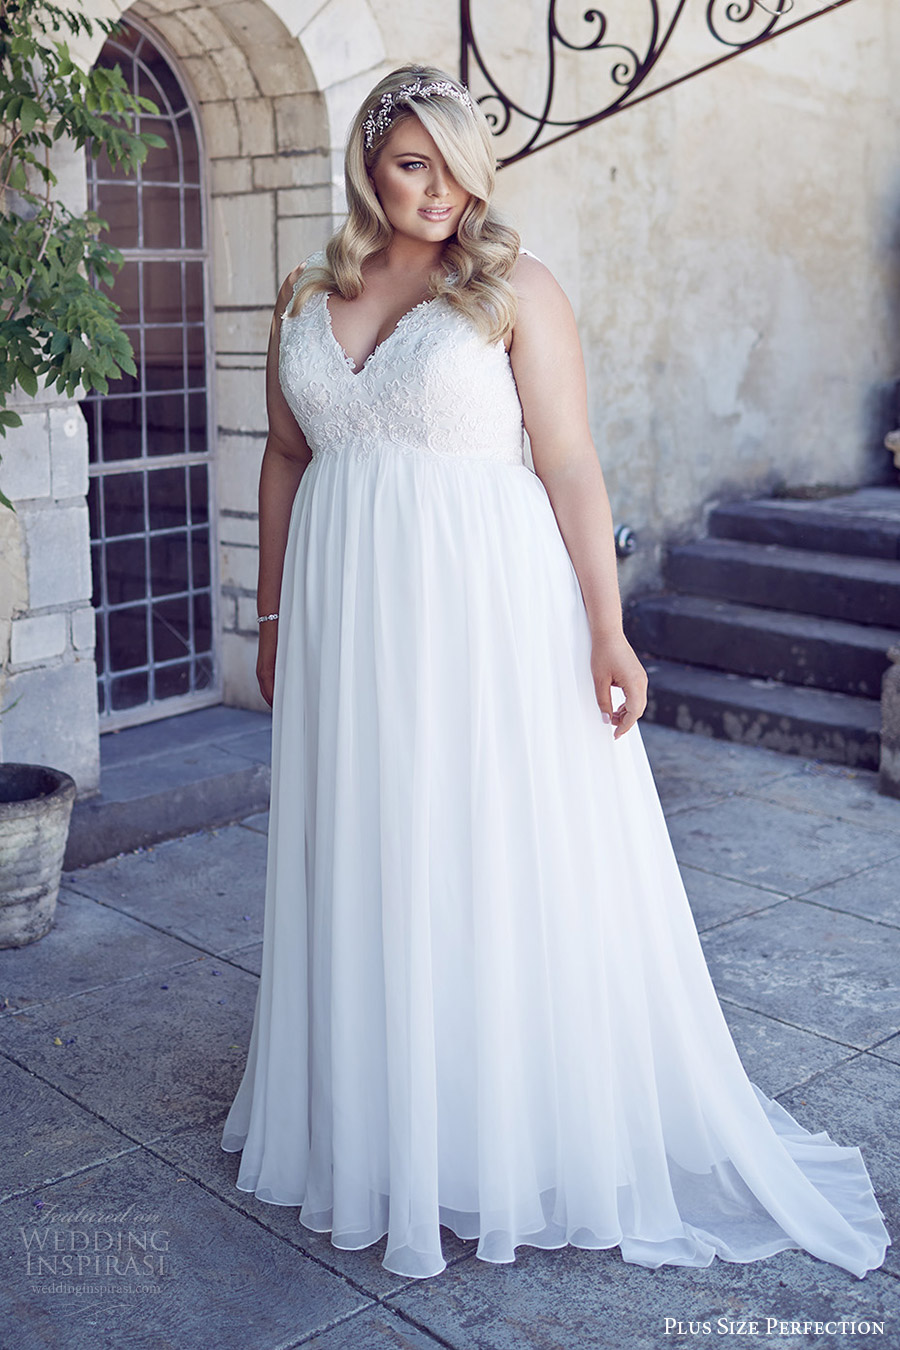 Plus Size Perfection Wedding Dresses  Its A Love Story